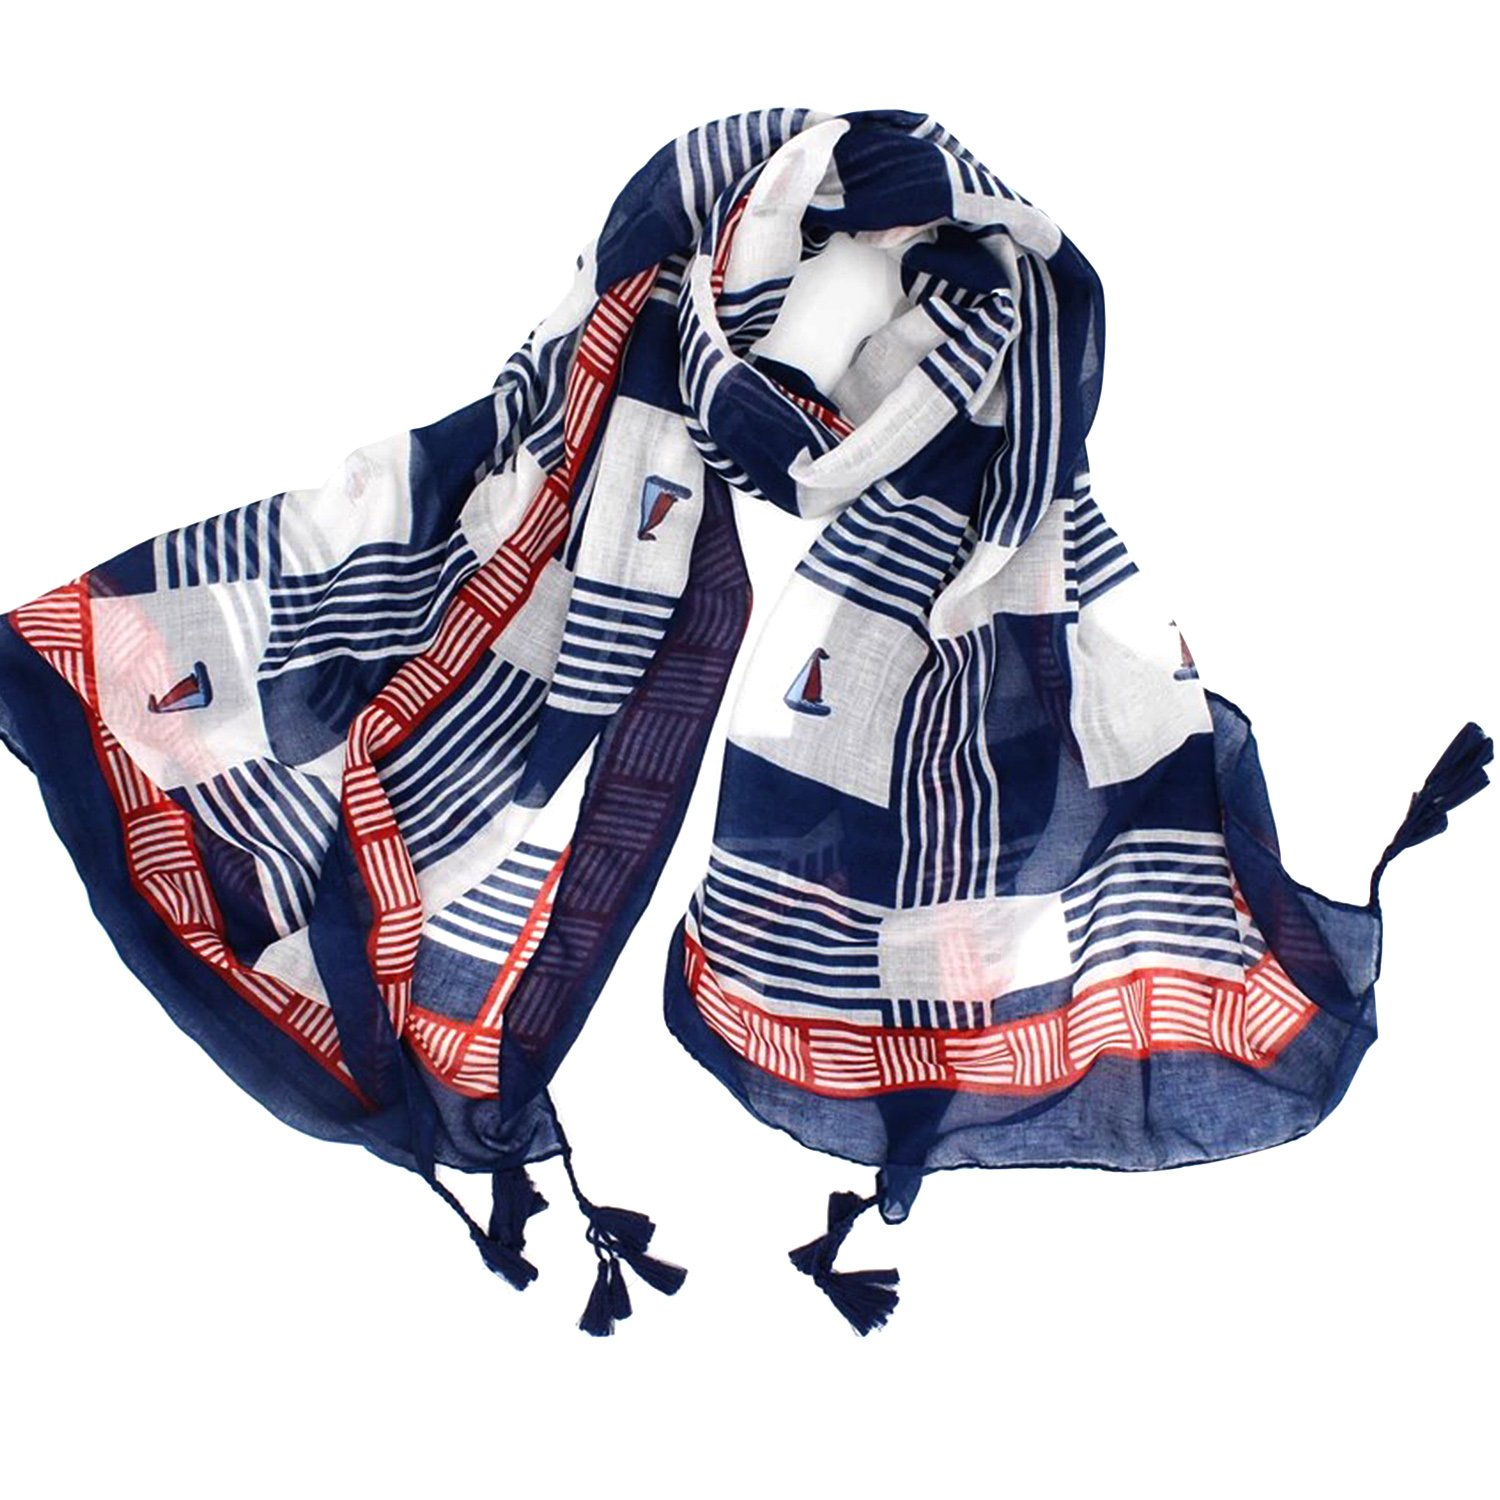 Apparel Accessories Girl's Scarves Gentle 1pc Baby Printed Scarf Fashion Cotton And Linen Spring Autumn Winter Children Kids Cute Scarves Warmer Neck Collar Scarf Perfect In Workmanship